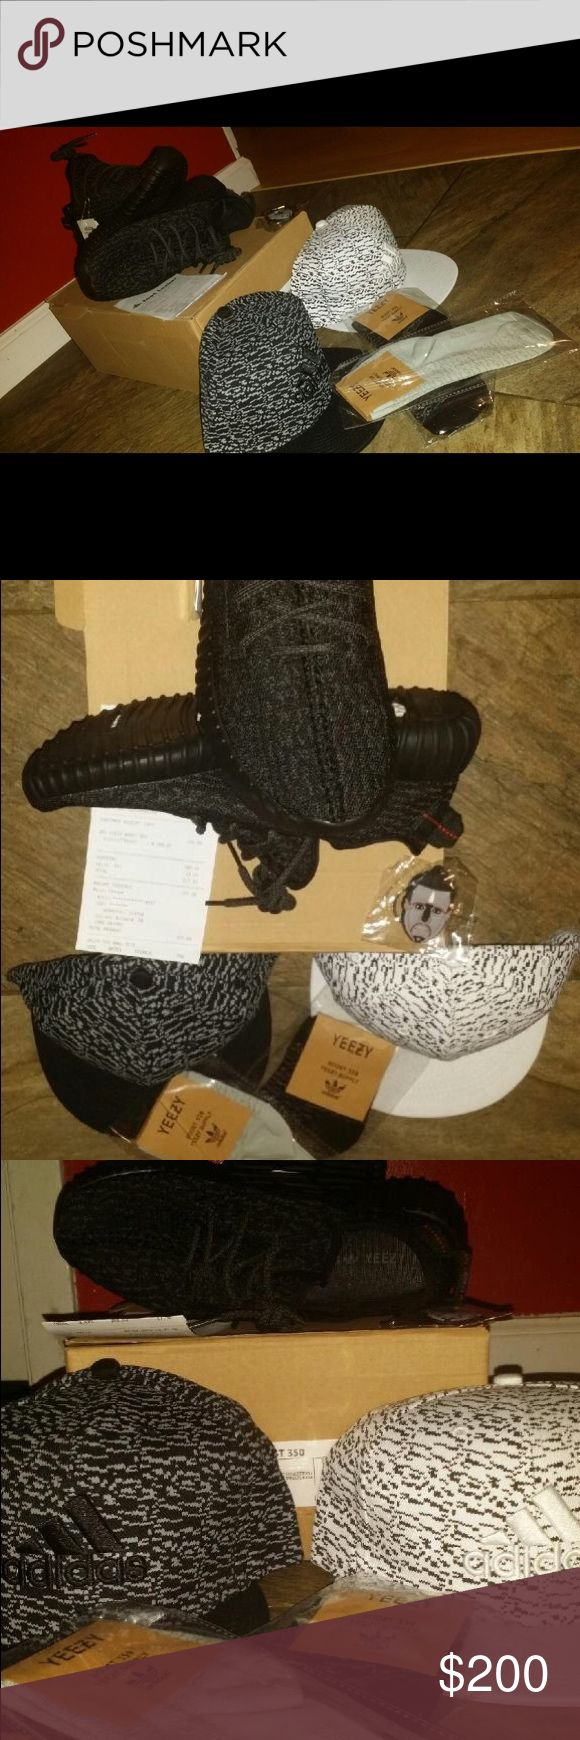 Adidas Yeezy Boost 350 Pirate Black Sz 7-8 Bundle! Brand new never worn. Box is perfect, receipt comes with it. One pair of socks and one hat is included. Everything is original. Message me to confirm! If your price doesn't fit your range I'm willing to negotiate EVERYTHING YOU SEE IN THE PHOTO YOU WILL ALSO GET PLUS THE YEEZYS! Adidas Shoes Sneakers